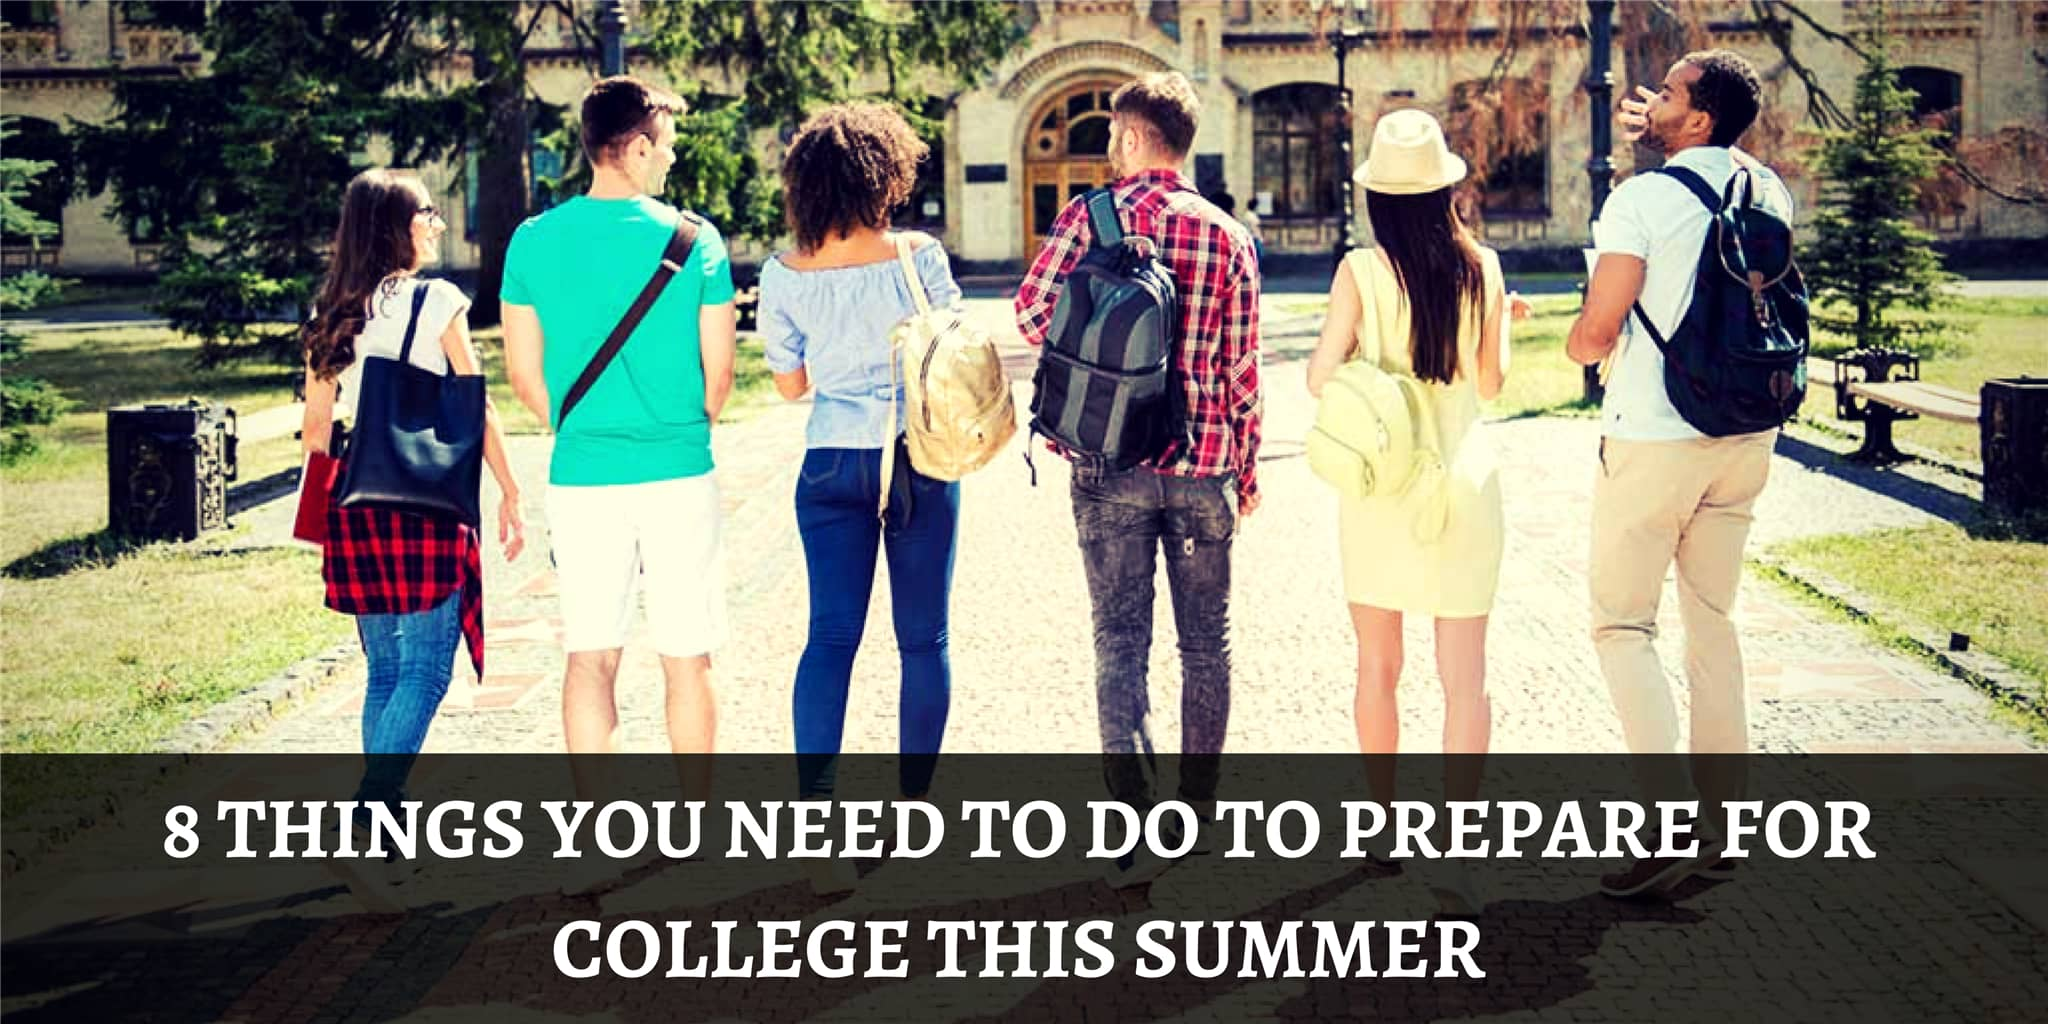 8 Things you Need to do to Prepare for College This Summer